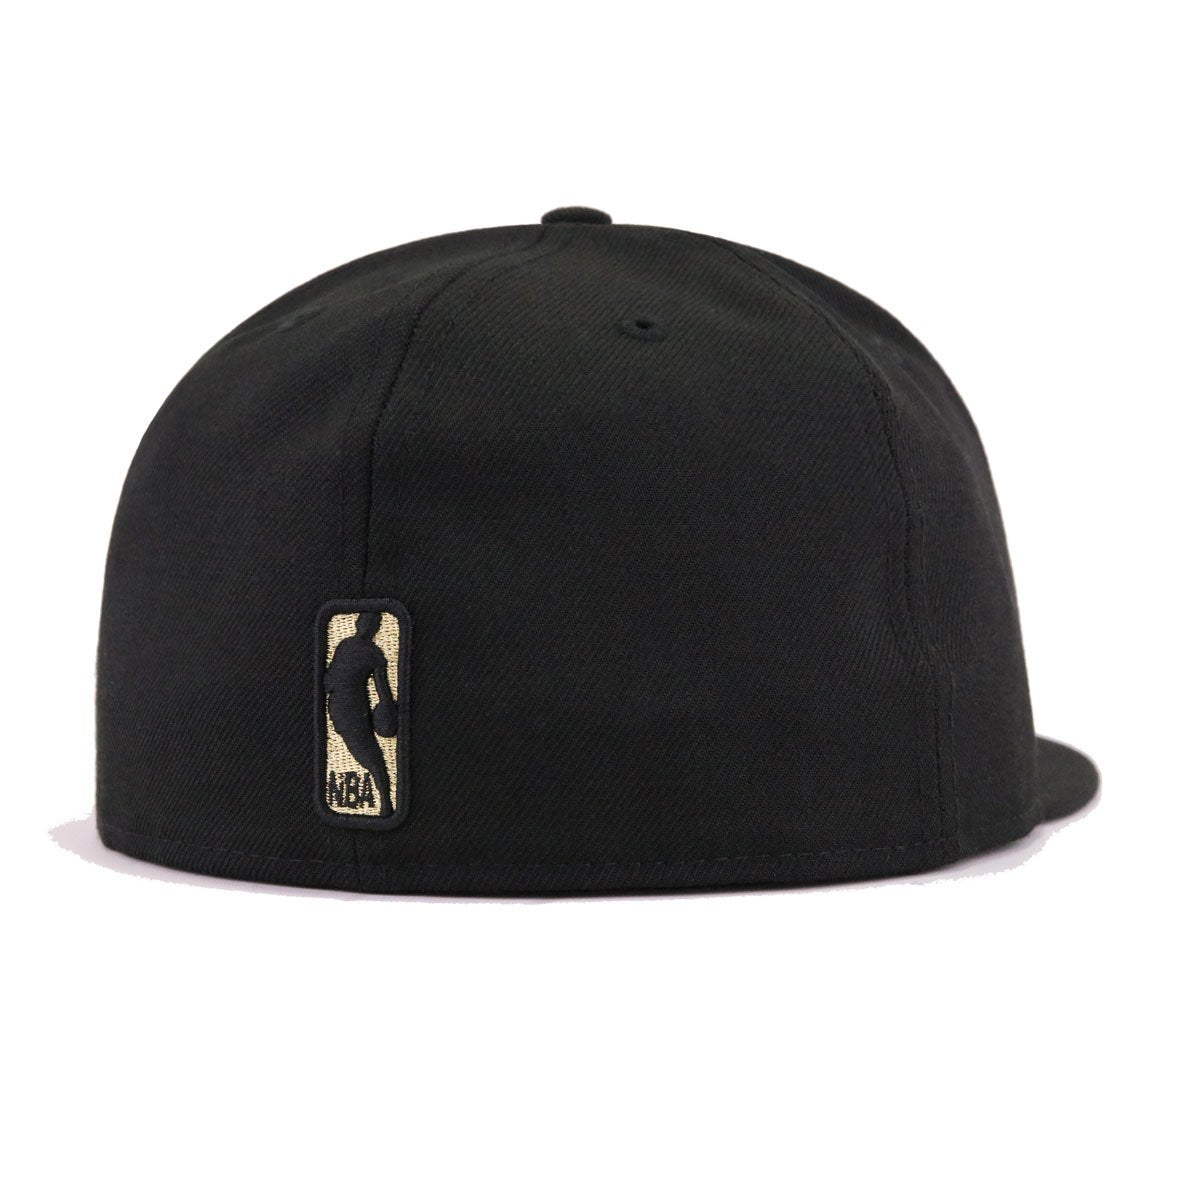 Los Angeles Lakers Black Metallic Gold New Era 59Fifty Fitted